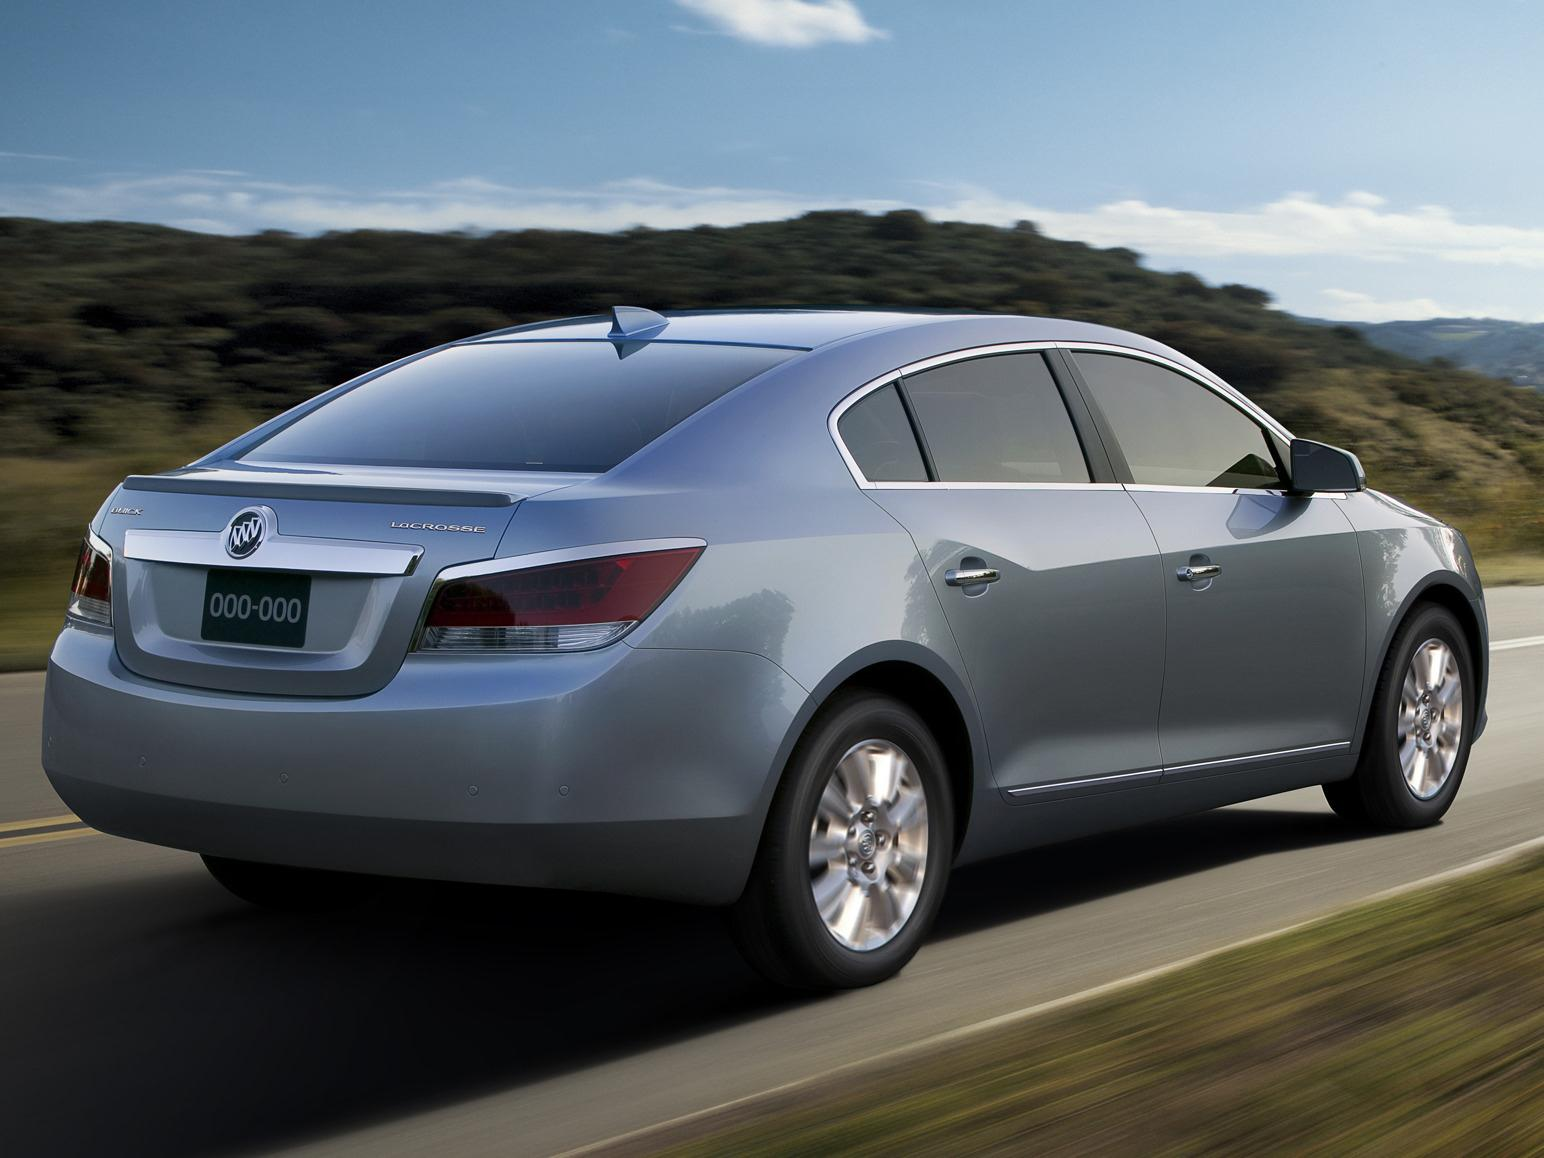 A Buick LaCrosse, one of the used cars recommended for teenage drivers by the Insurance Institute for Highway Safety.